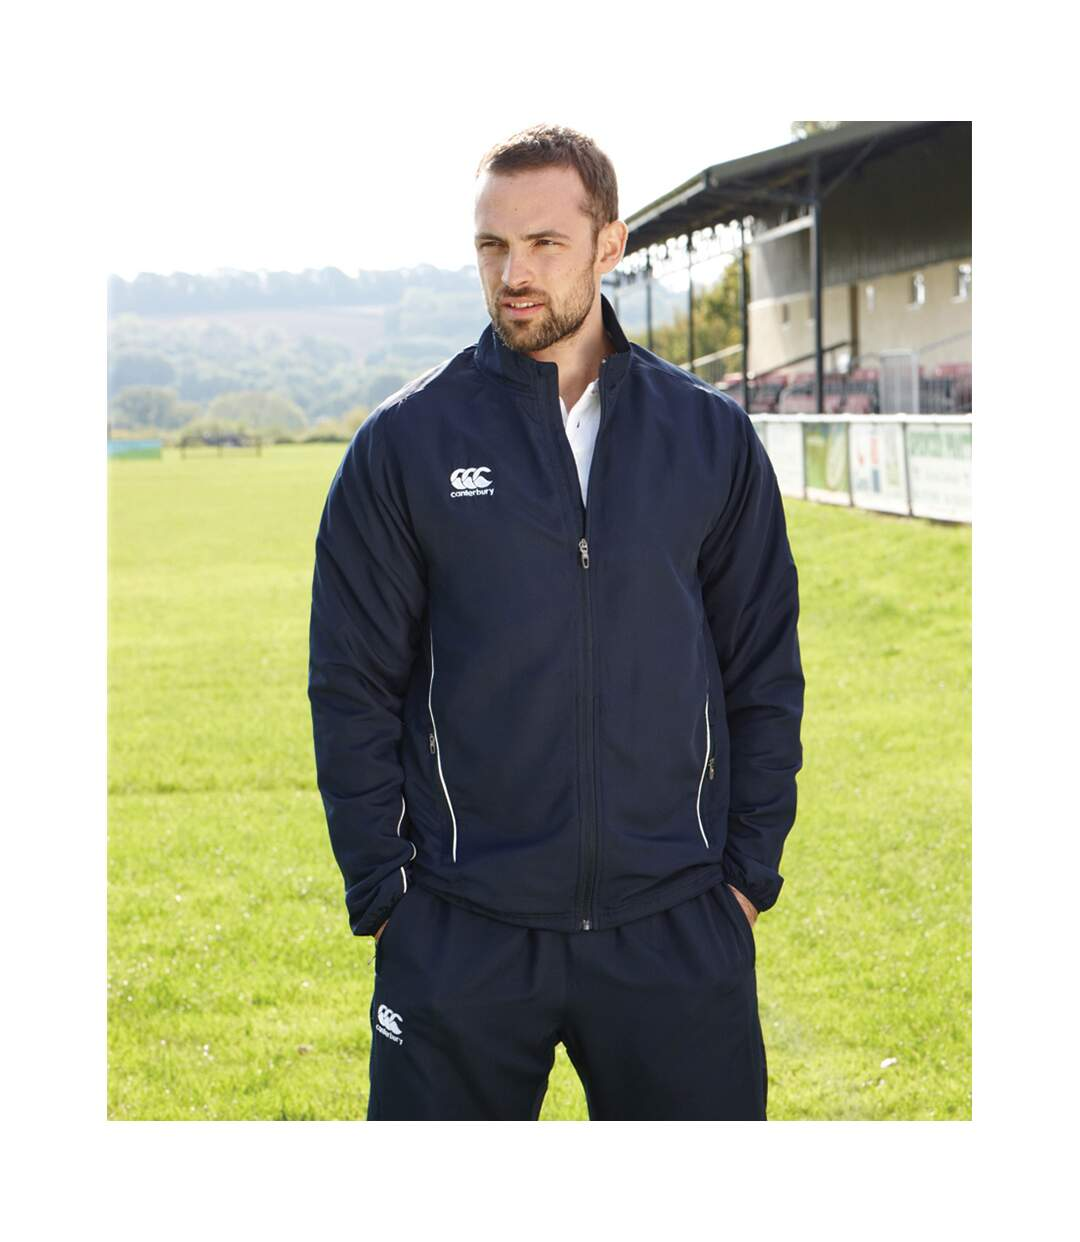 Canterbury Mens Team Athletic Water Resistant Track Jacket (Navy/White) - UTPC2475